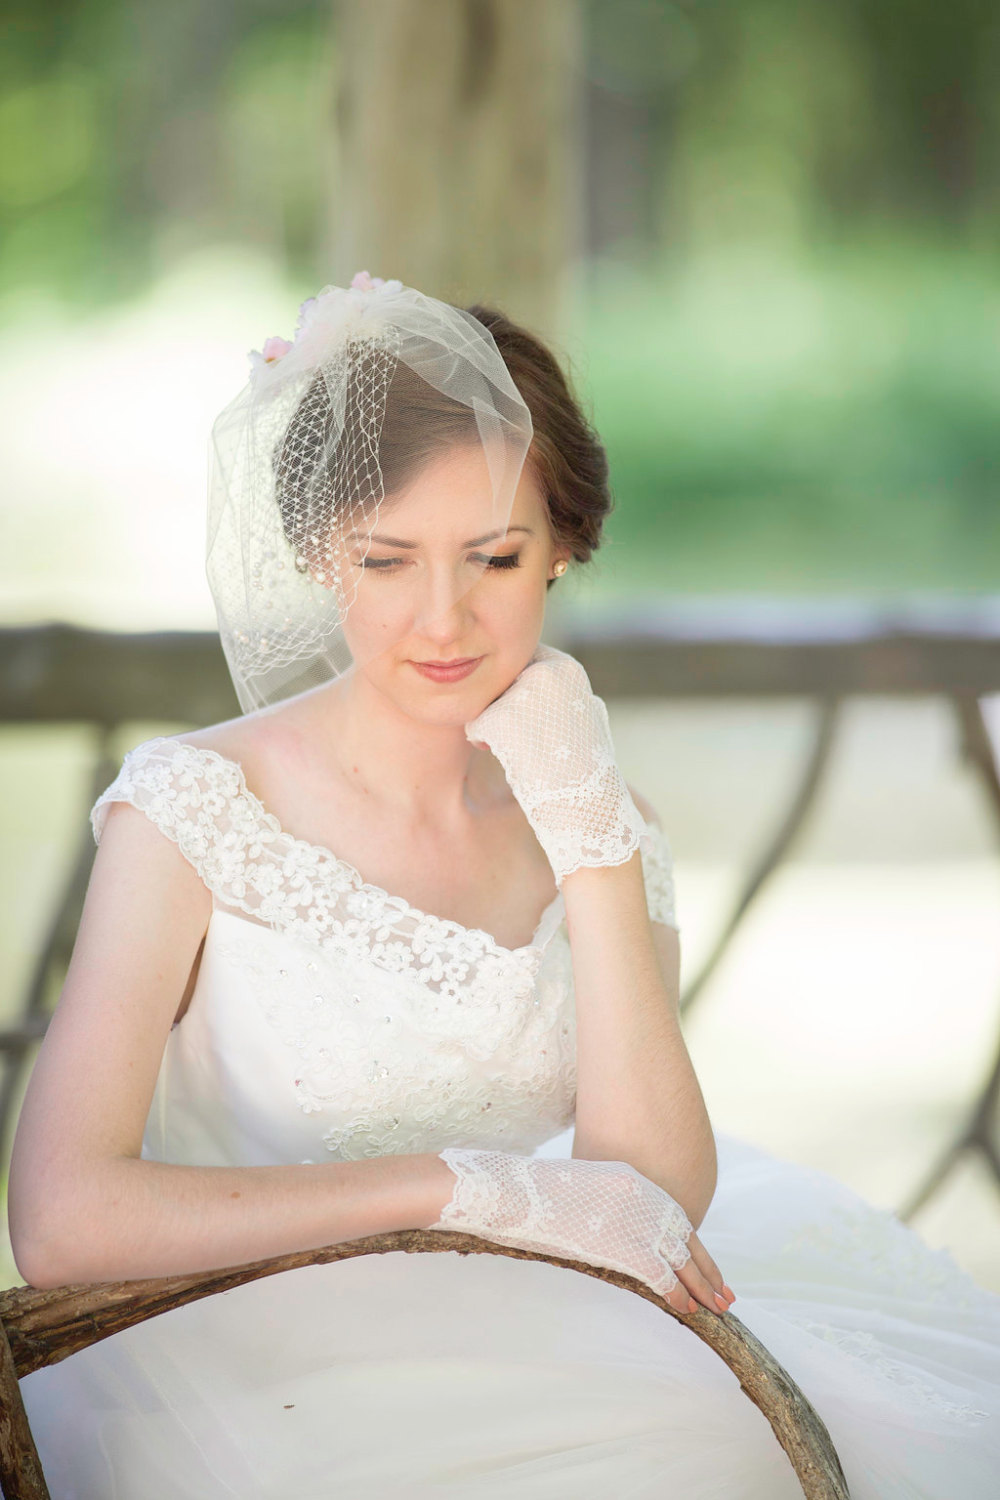 Tulle Birdcage Veil With Pearls, Ivory Blusher Veil, Net Veiling, - Isabelle White Birdcage, Bridal Hair Accessory